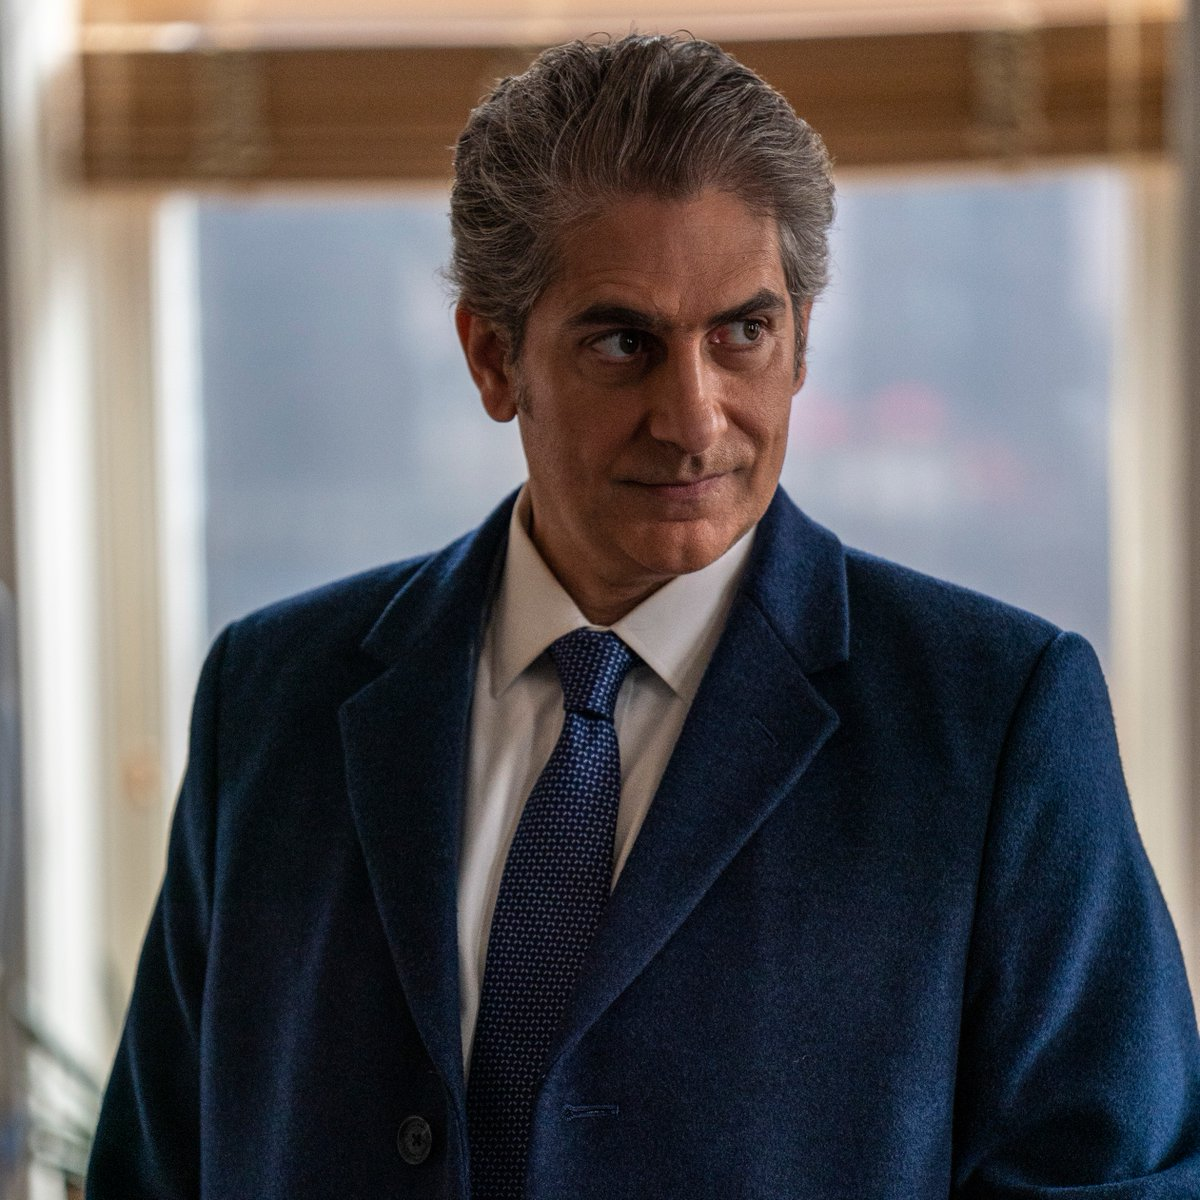 We're honored to have him as Sellitto. Happy birthday, Michael Imperioli!